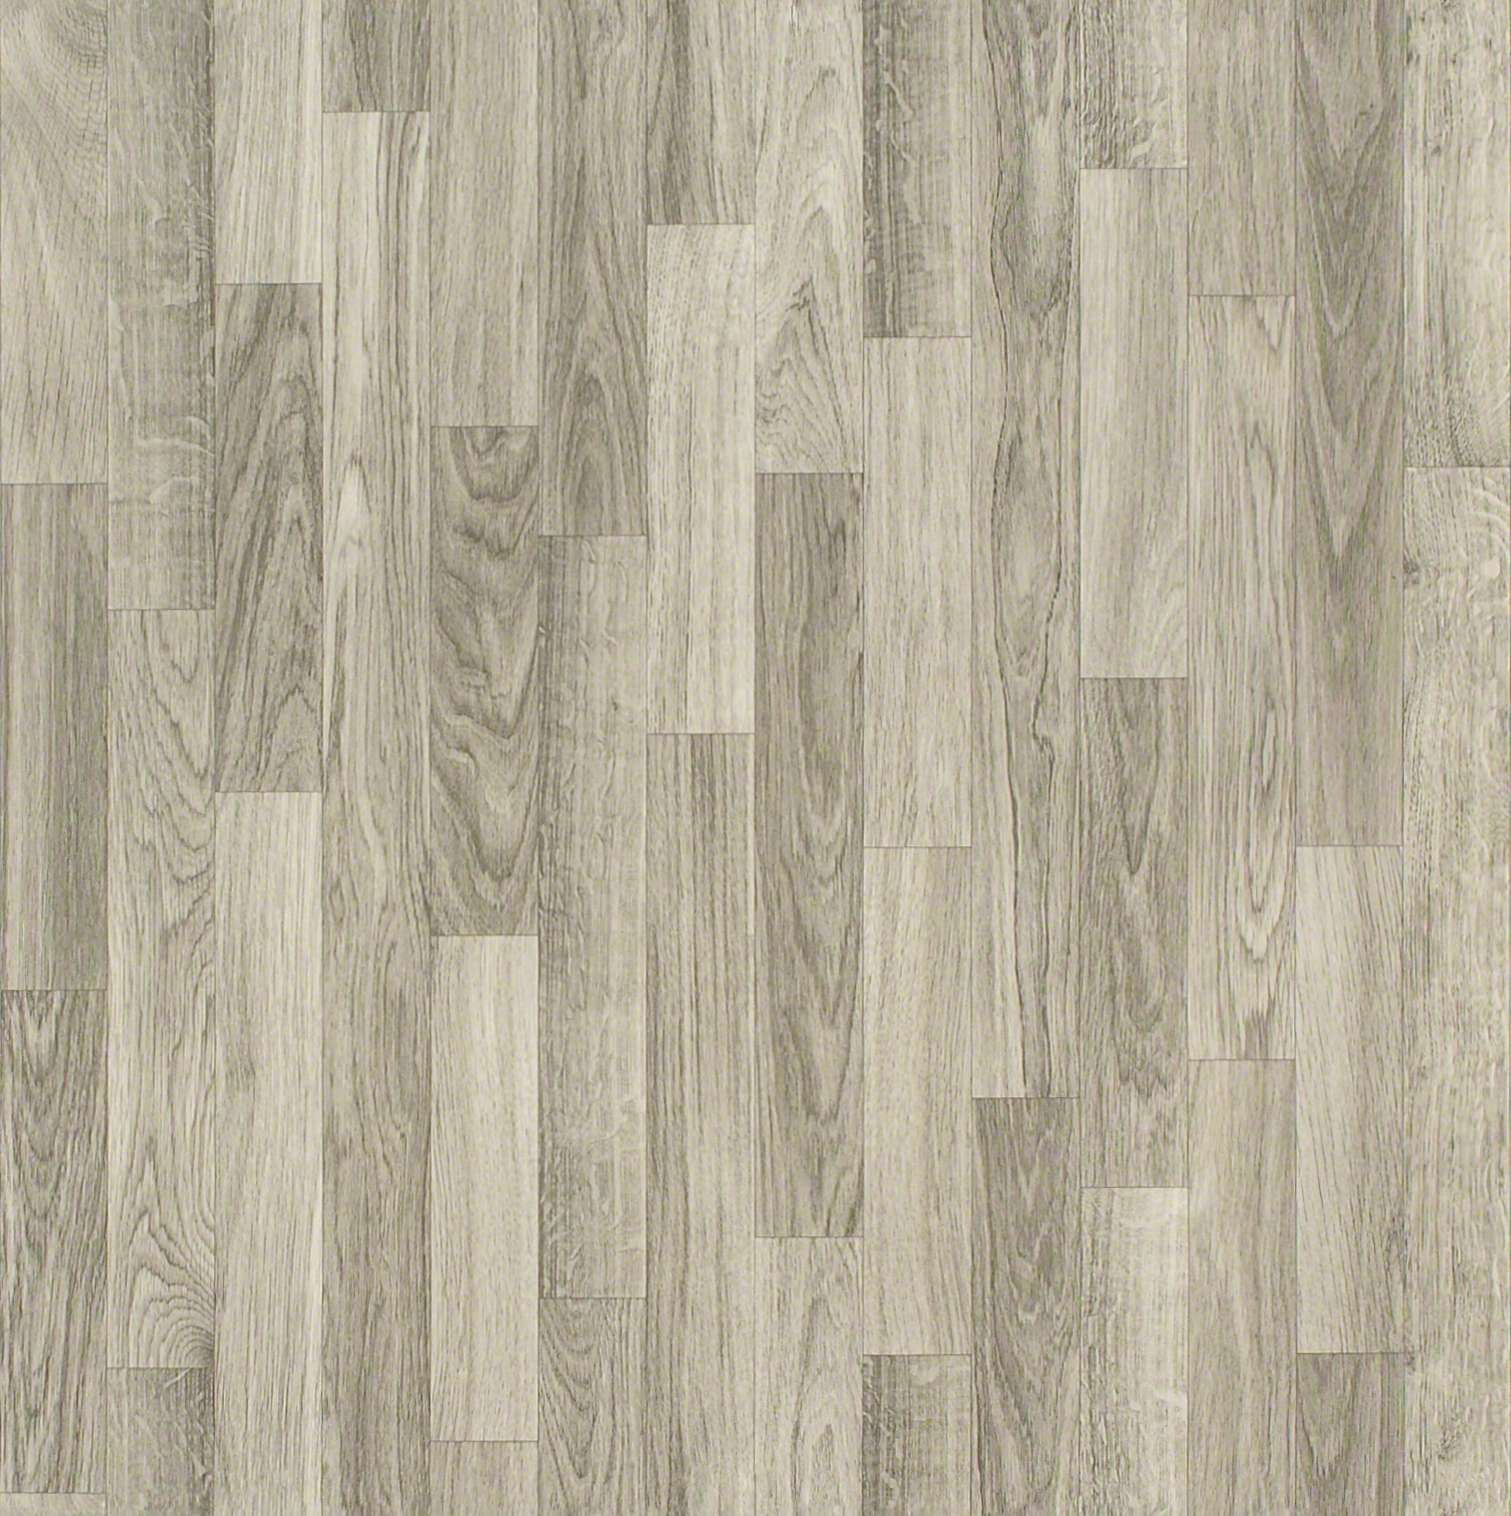 Plateau Crossbeam Sa605 00541 Resilient Sample Shaw Floors Flooring Wood Floor Pattern Resilient Flooring